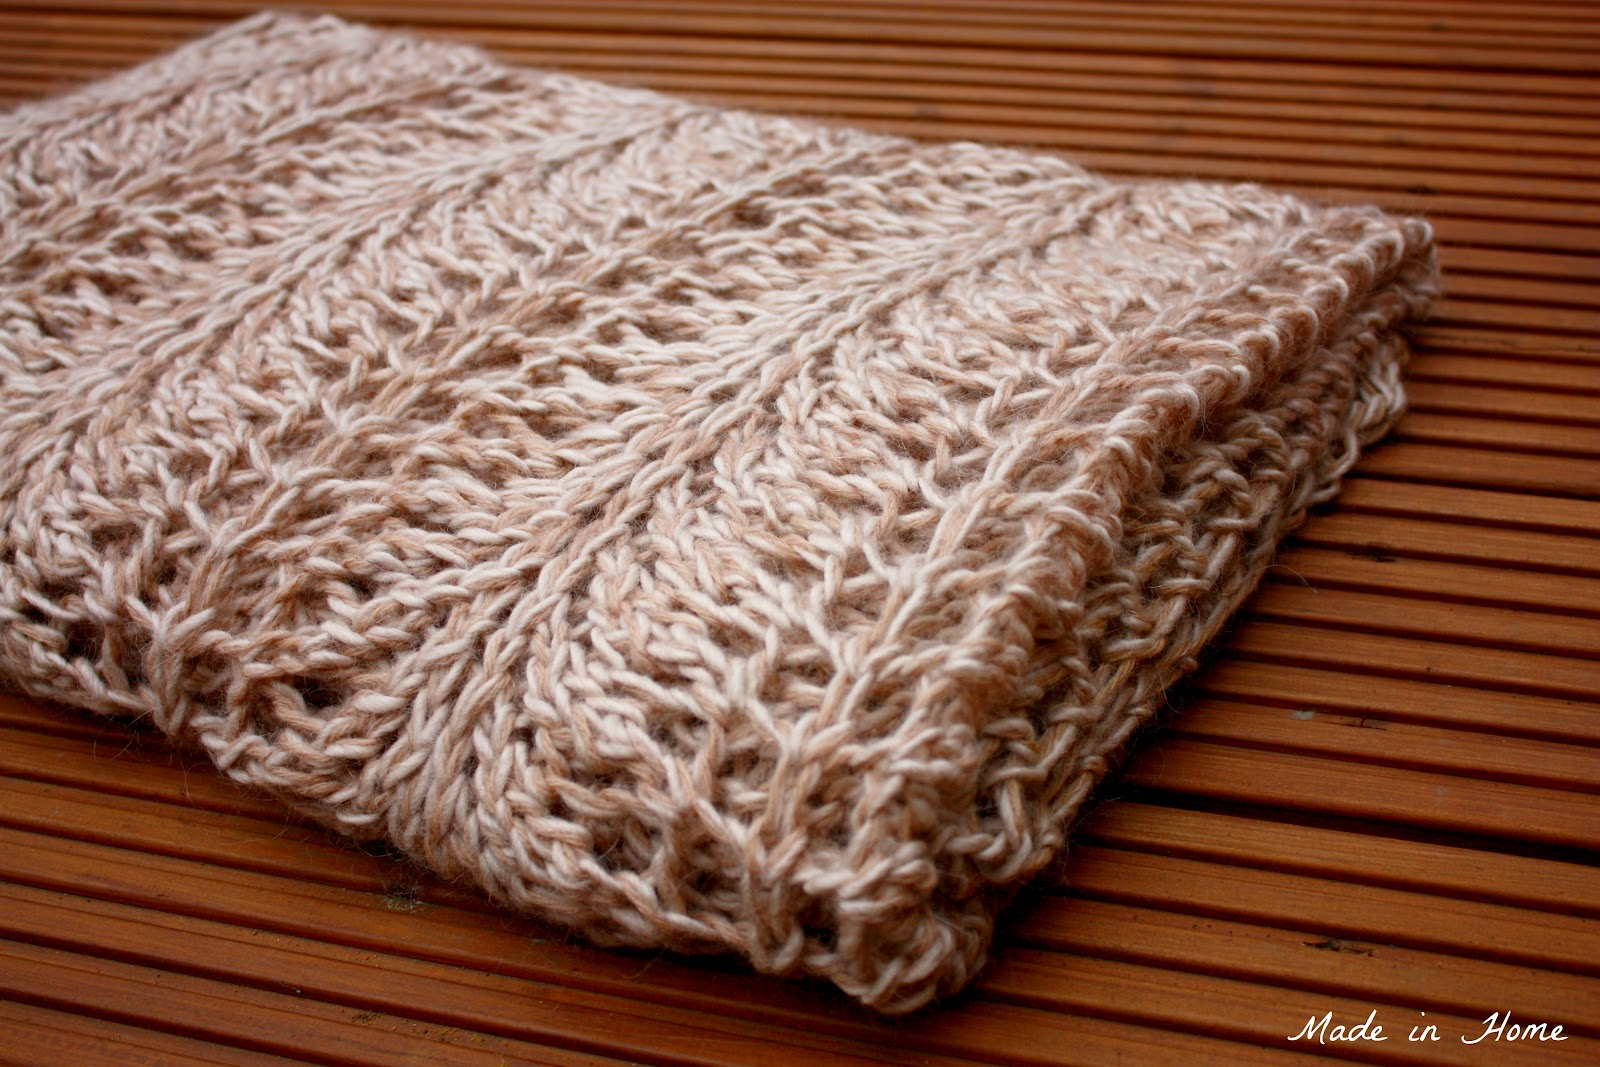 Made in Home: Creamy Buttery Blanket {knitting pattern}